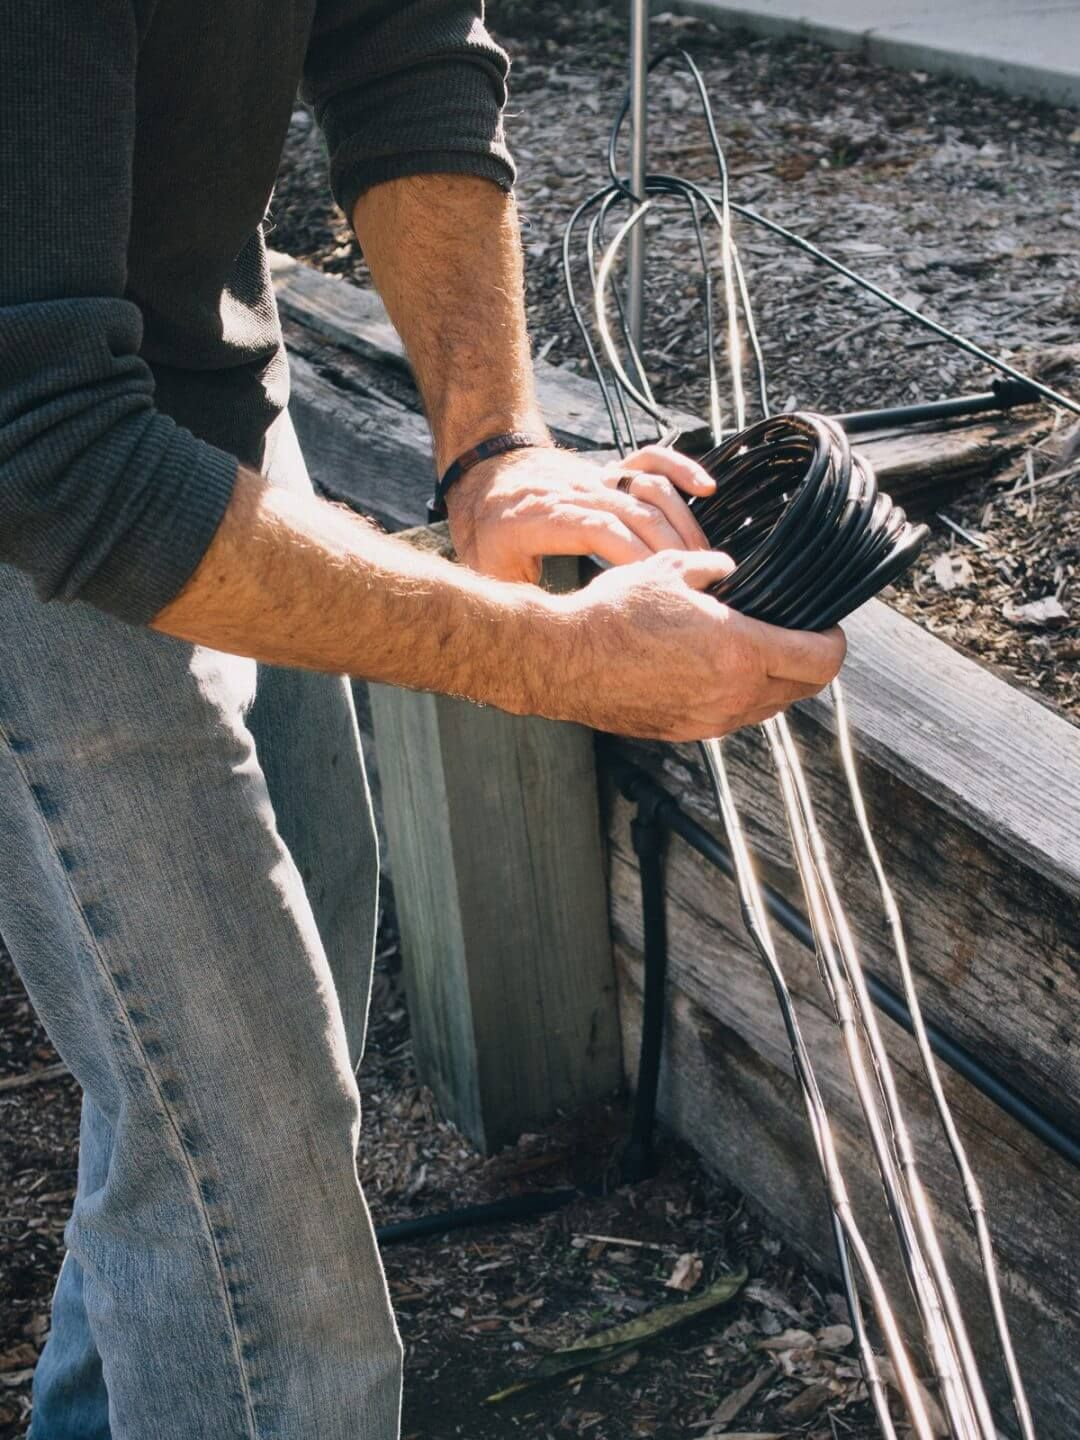 Drip irrigation assembling and installing your system